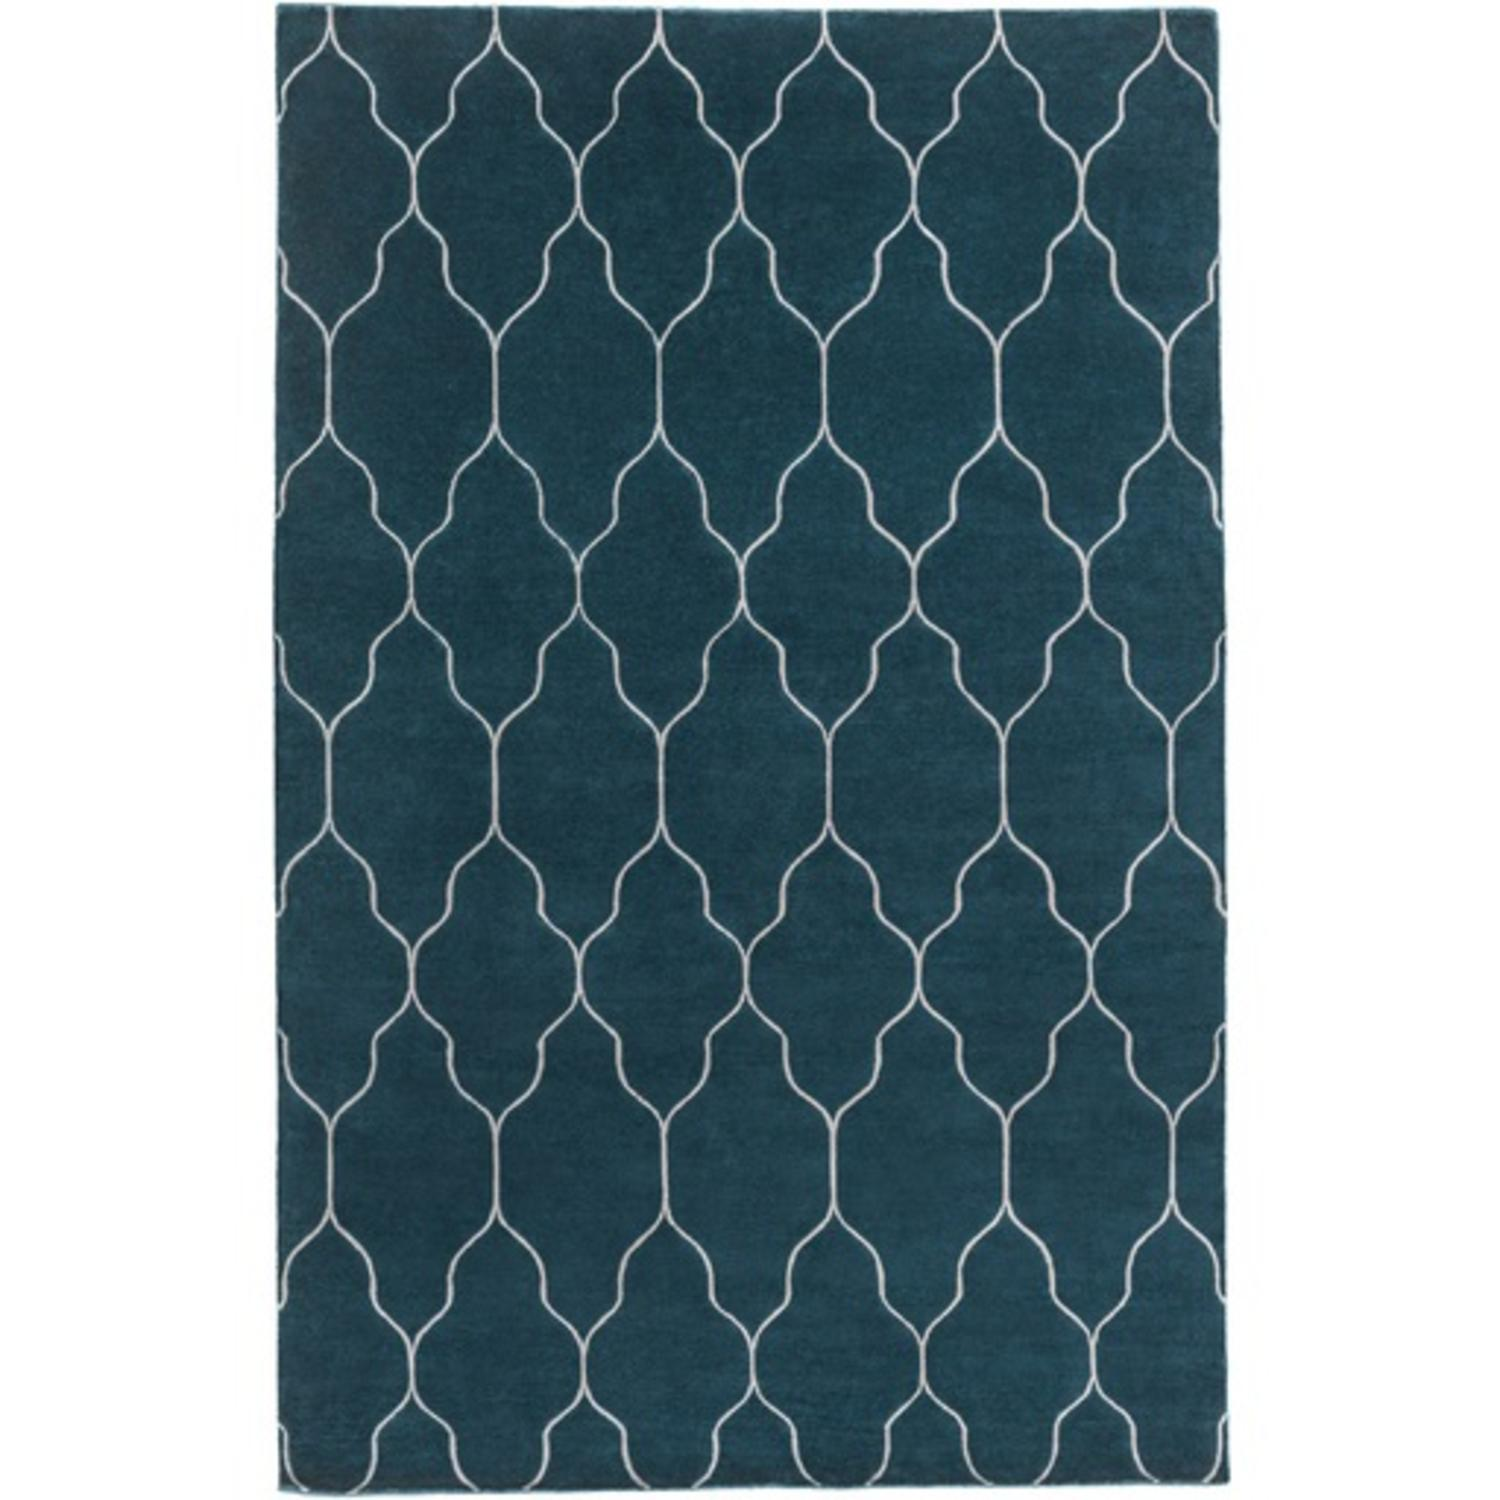 2' x 3' Chained Mysteries Teal Blue and Dove Gray Area Throw Rug